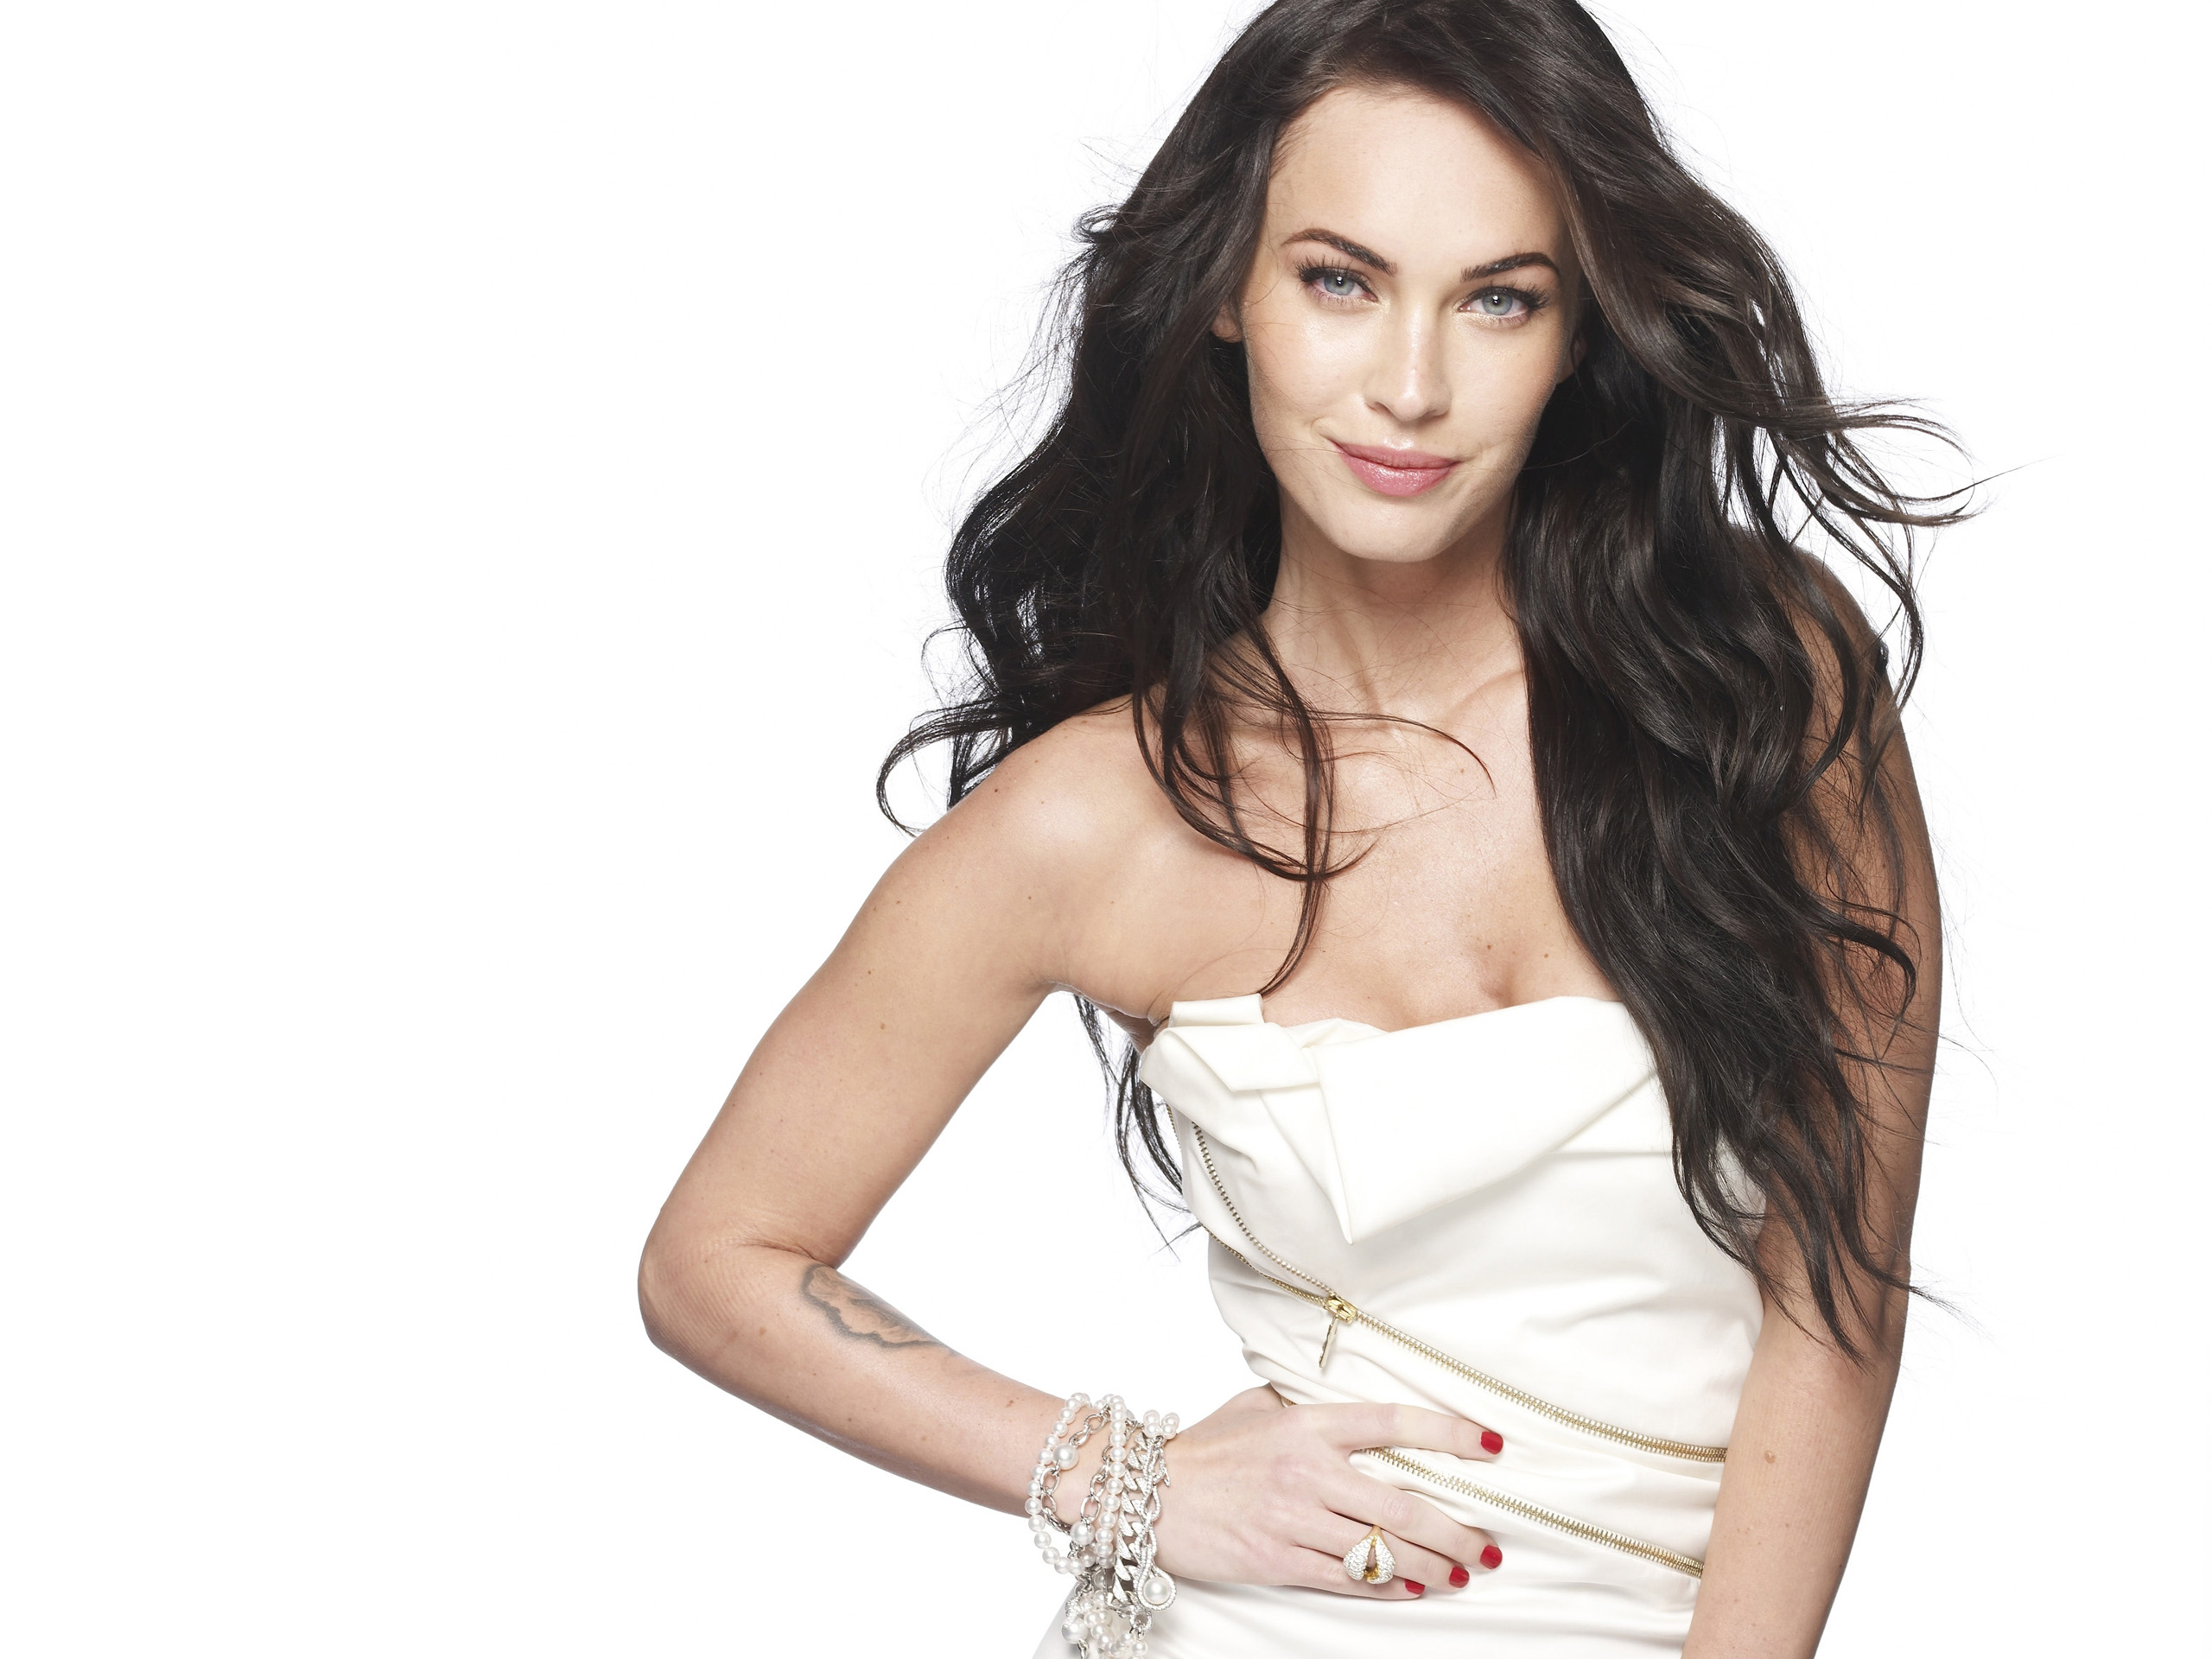 Megan Fox 2009 Wallpapers HD Wallpapers 2560x1920